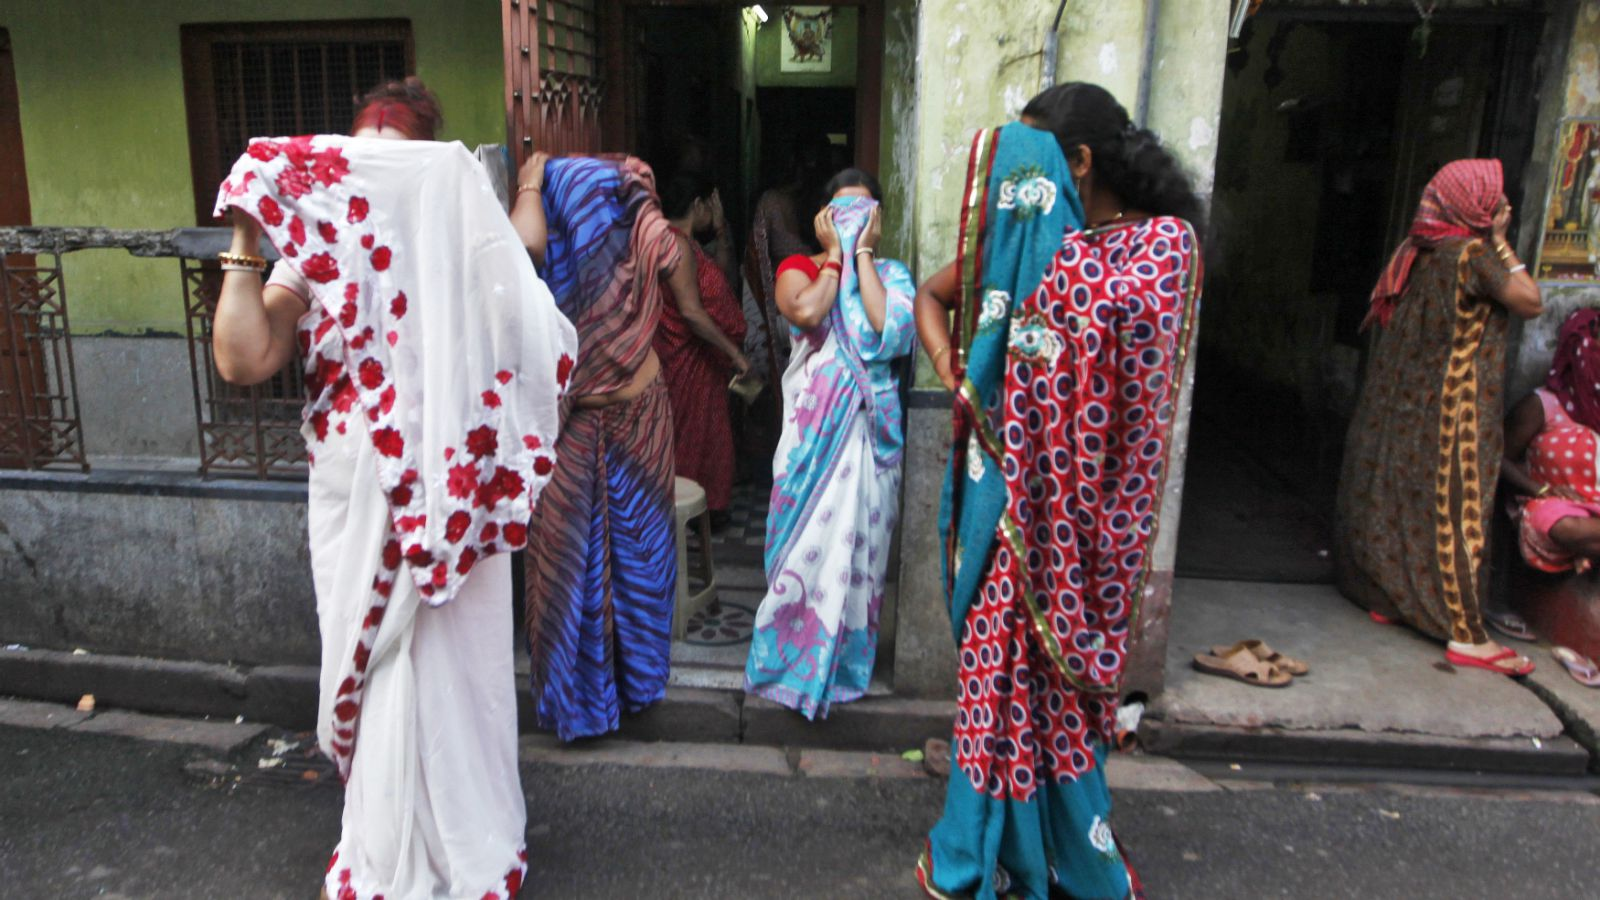 Indian sex workers cover their faces as they react to the camera while watching a rally as part of the week-long sex workers' freedom festival at the Sonagachi red-light area in Kolkata July 24, 2012. In the global battle against HIV/AIDS, sex workers like those in Sonagachi, one of Asia's largest red light districts, are a crucial link in a chain of infection that some 20,000 experts gathered in Washington are debating how to break -- but without having foreign sex workers there. Picture taken on July 24, 2012. To match story INDIA-SEXWORKERS/